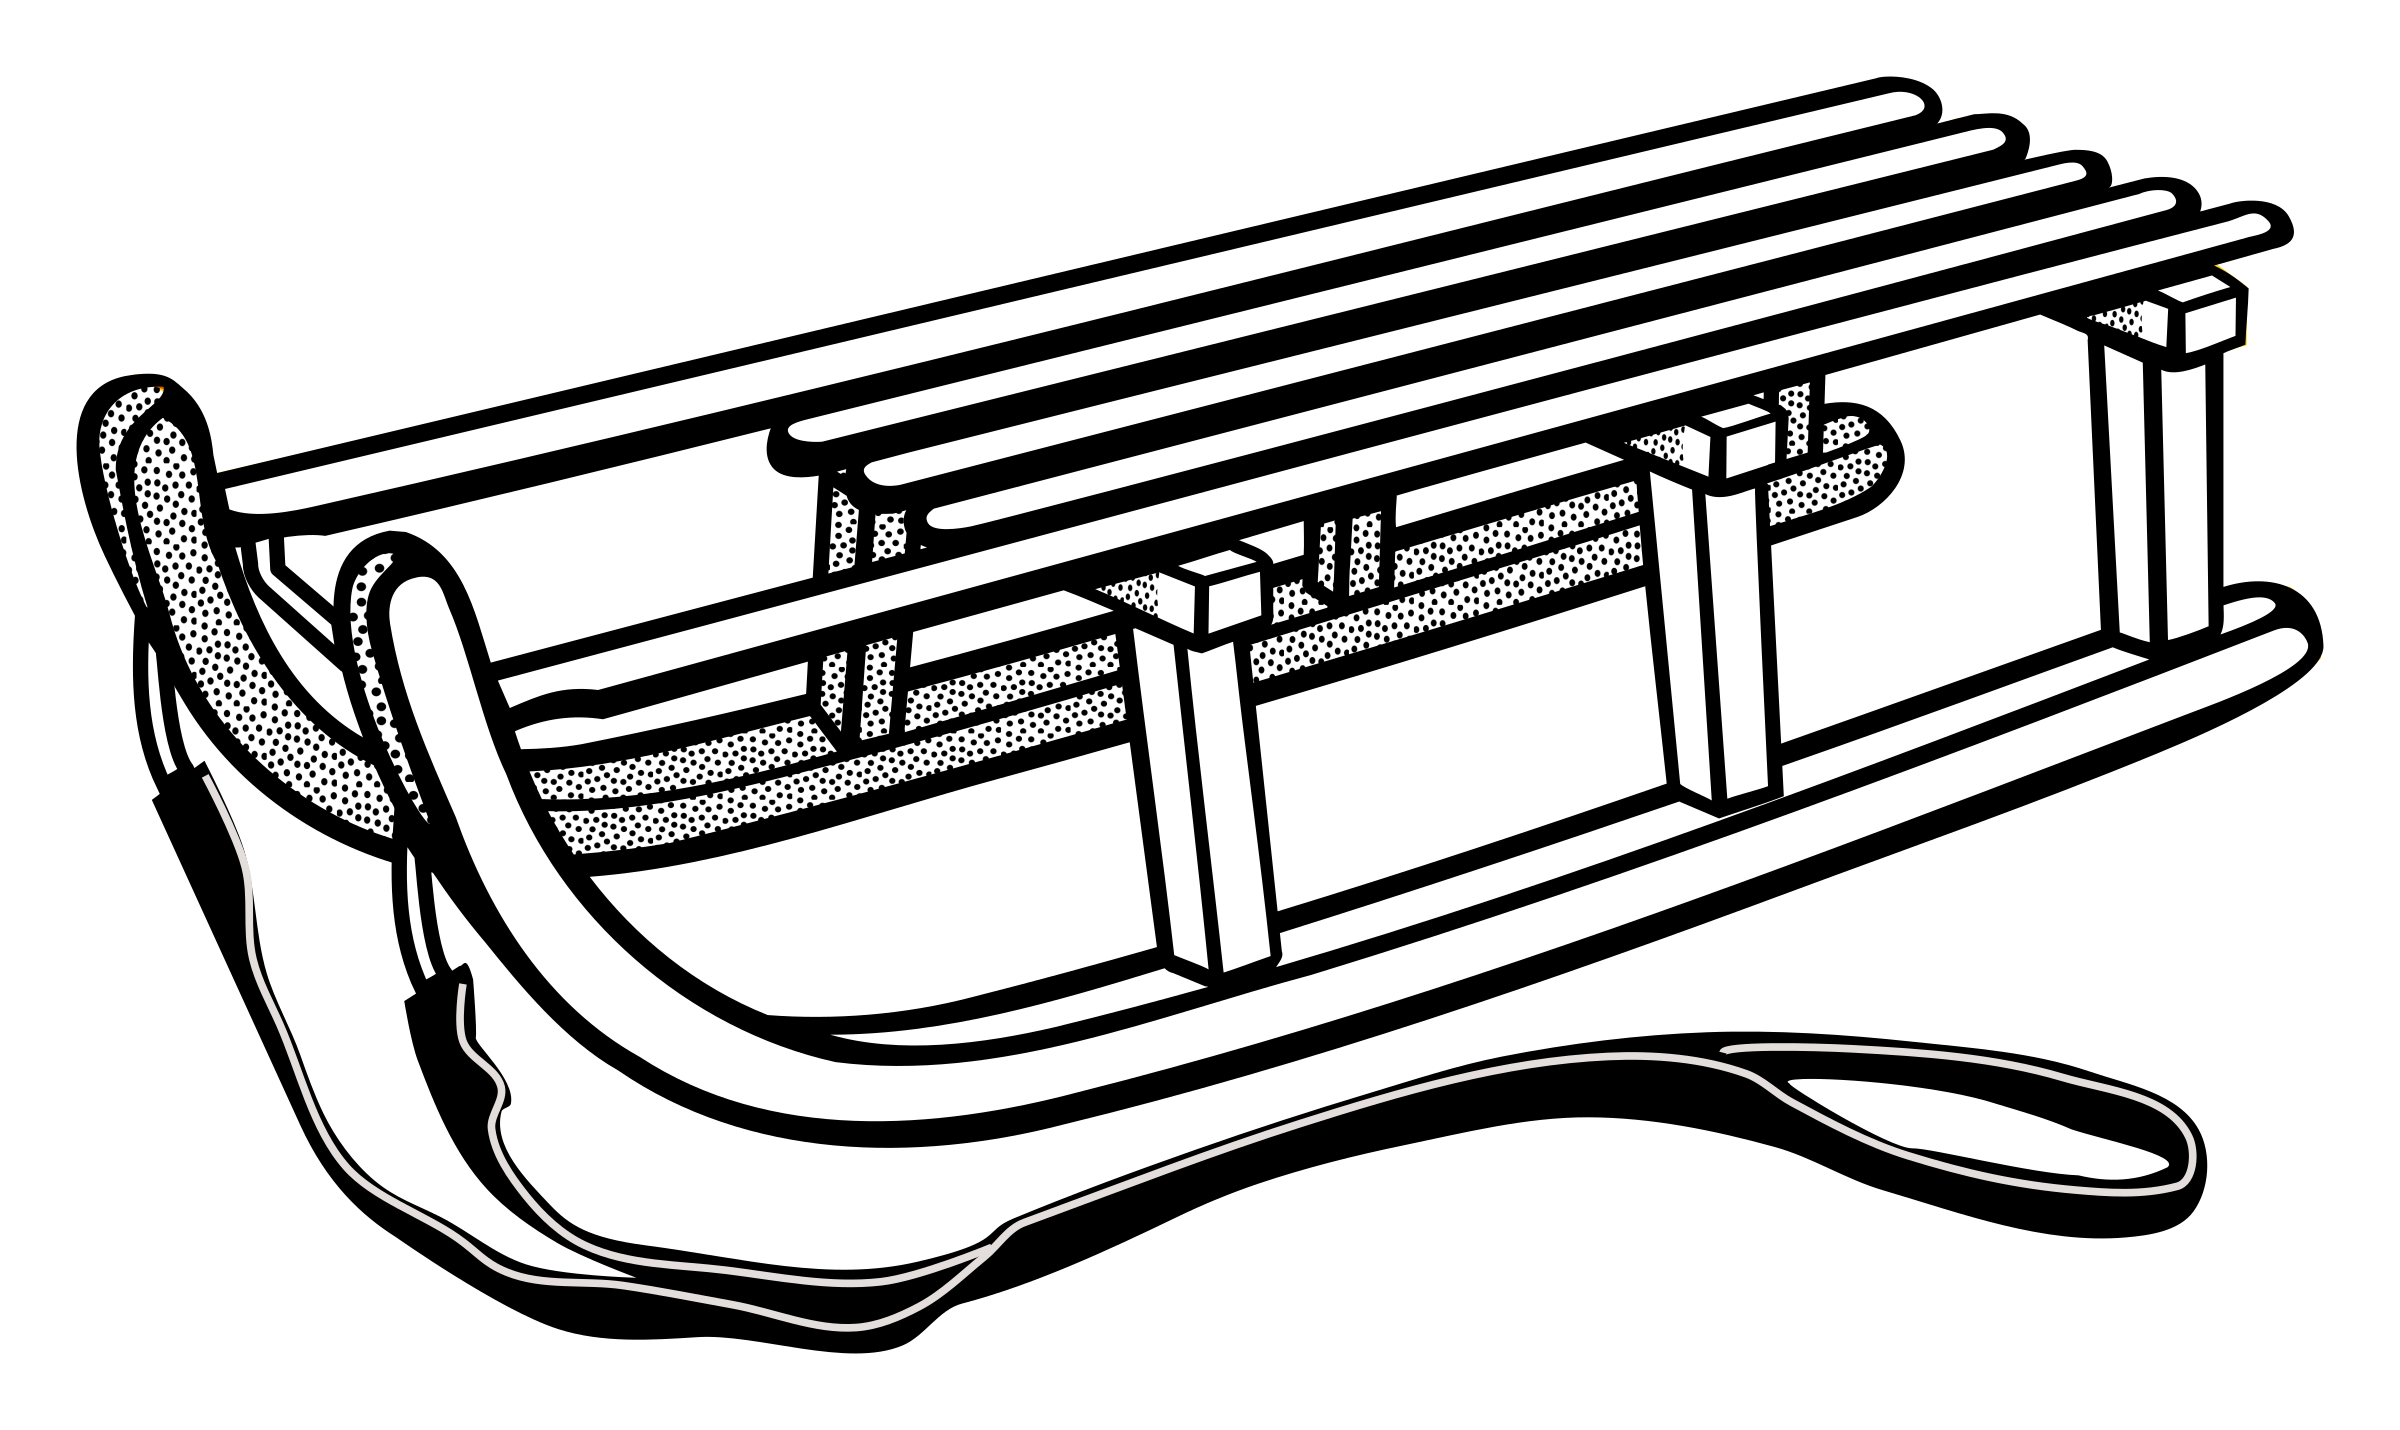 Sledding drawing old fashioned. Clipart sled huge